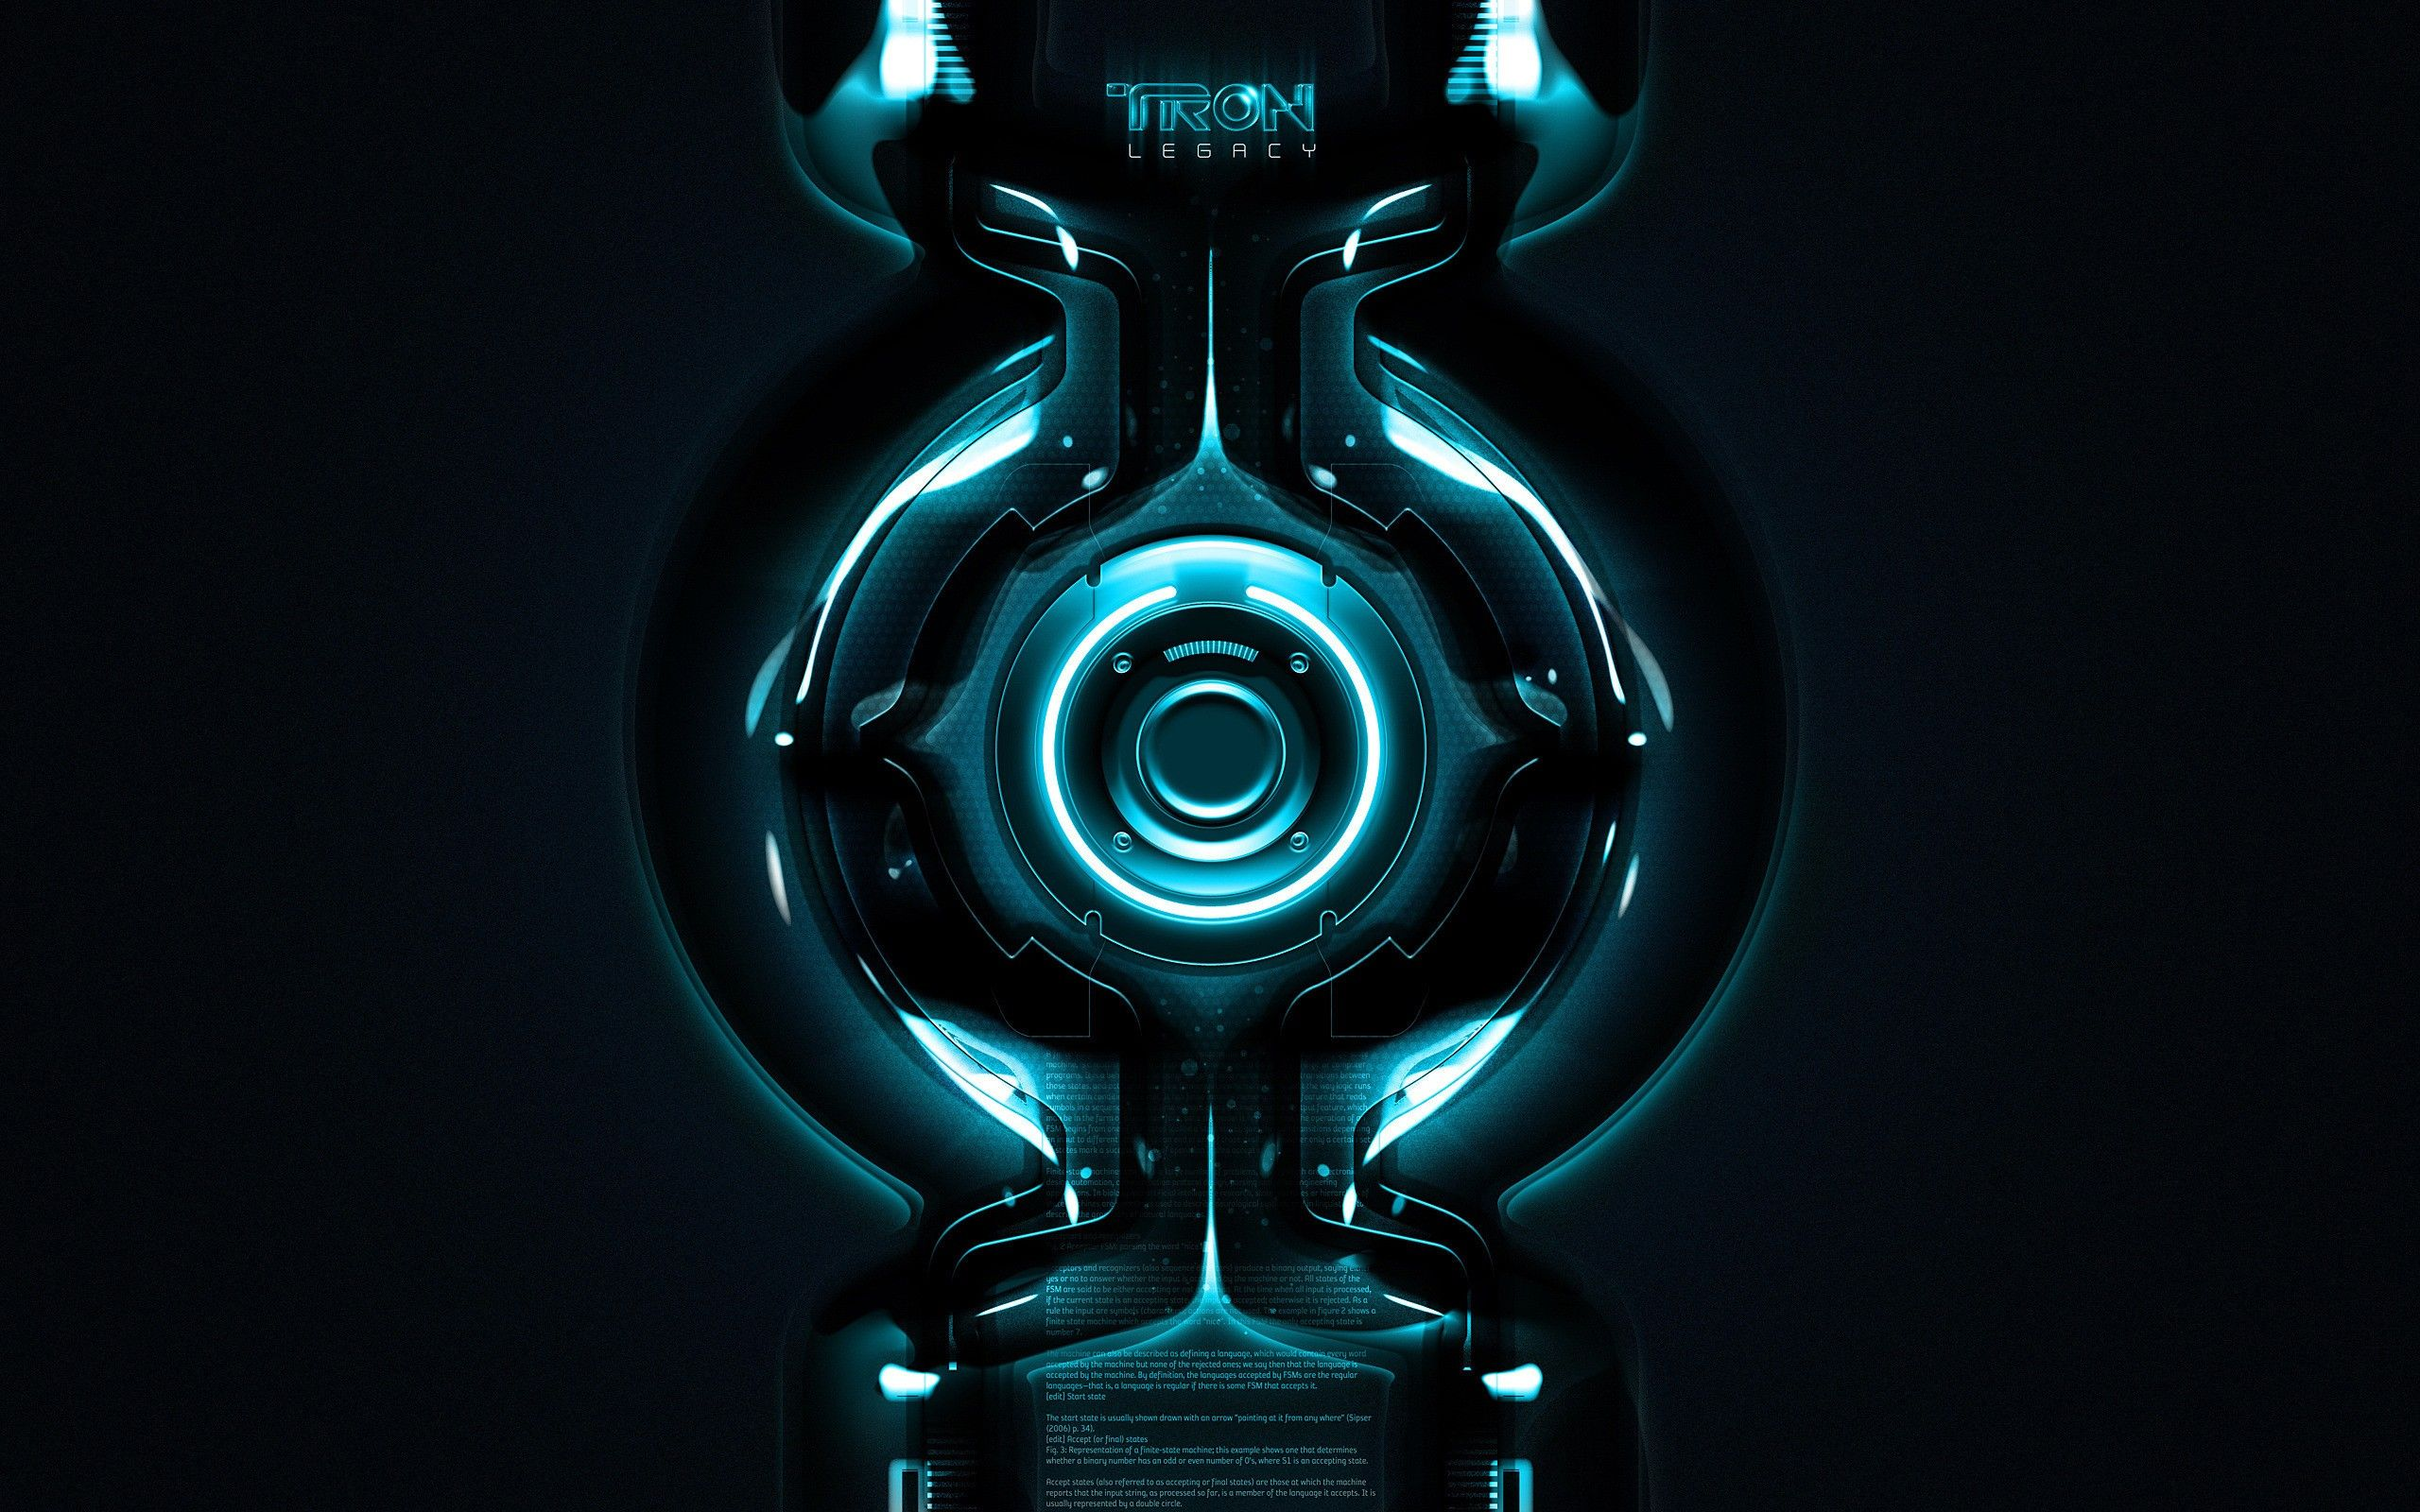 Tron Legacy Wallpapers Page Hd Wallpapers Tron Legacy Hi Tech Wallpaper Hd Wallpaper